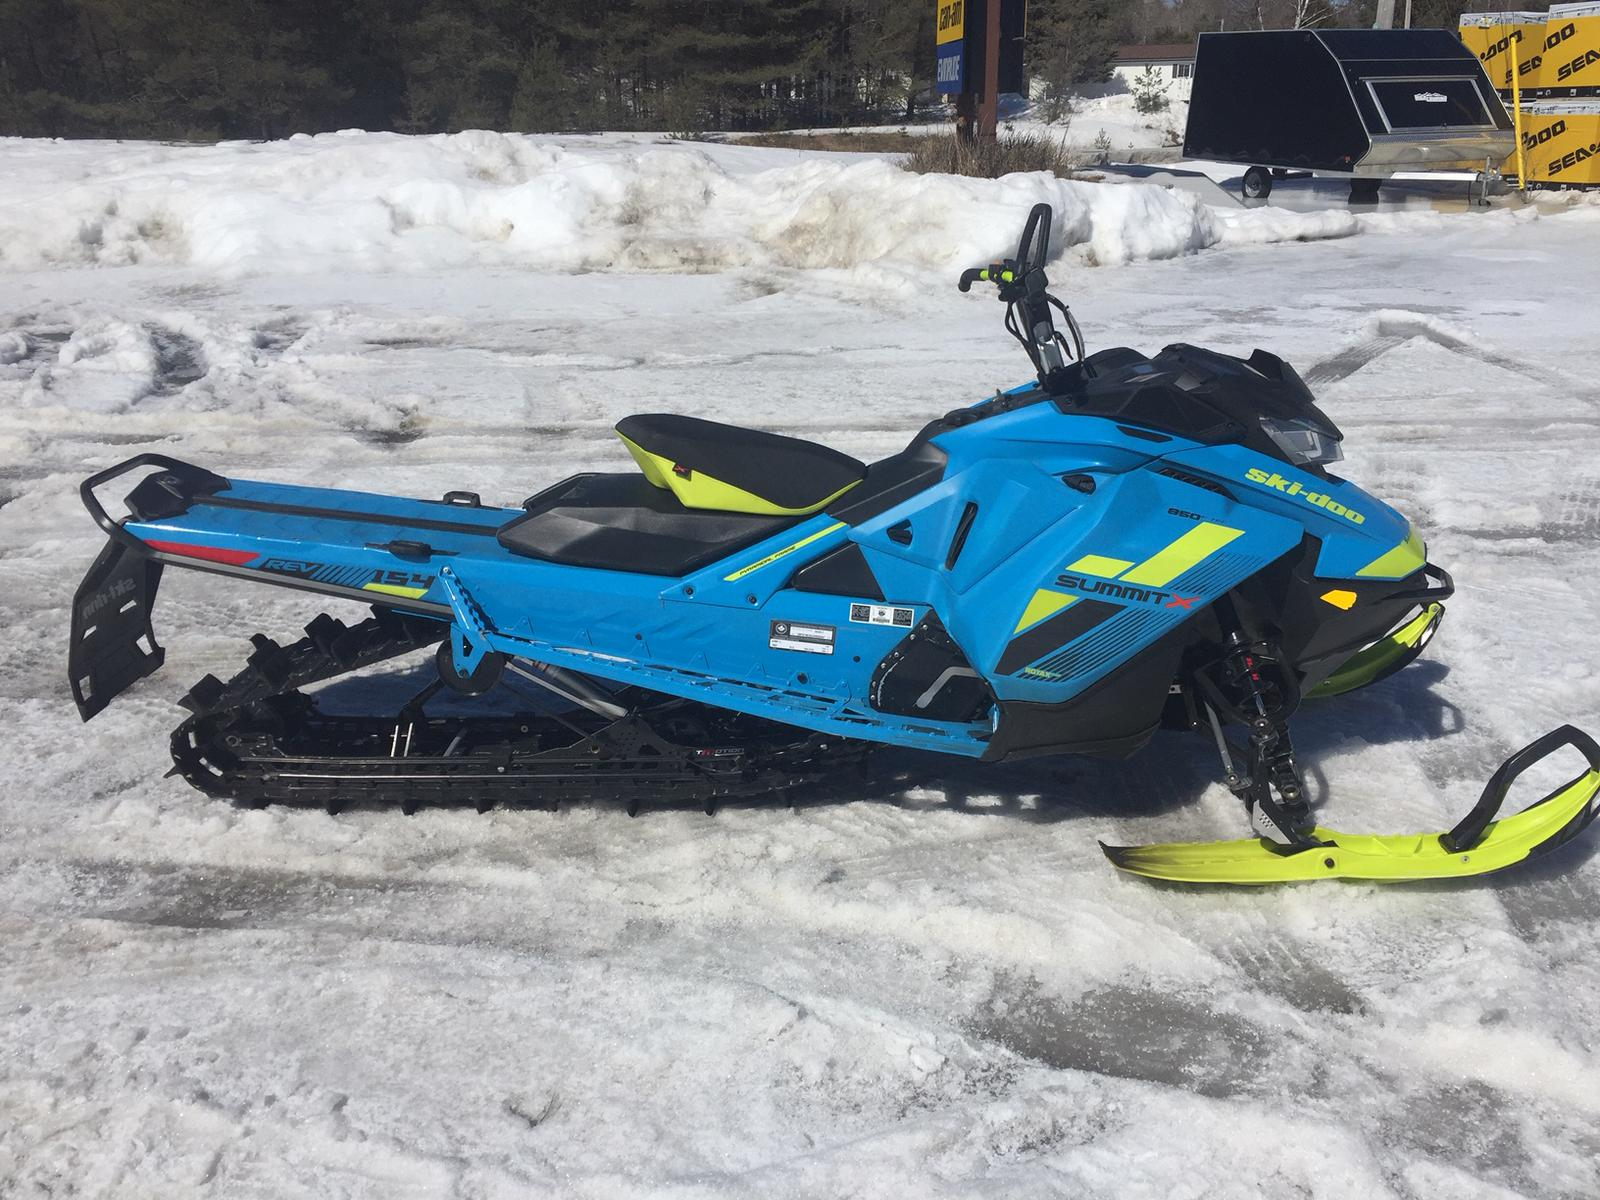 2018 Ski Doo SUMMIT X 850 | 1 of 2